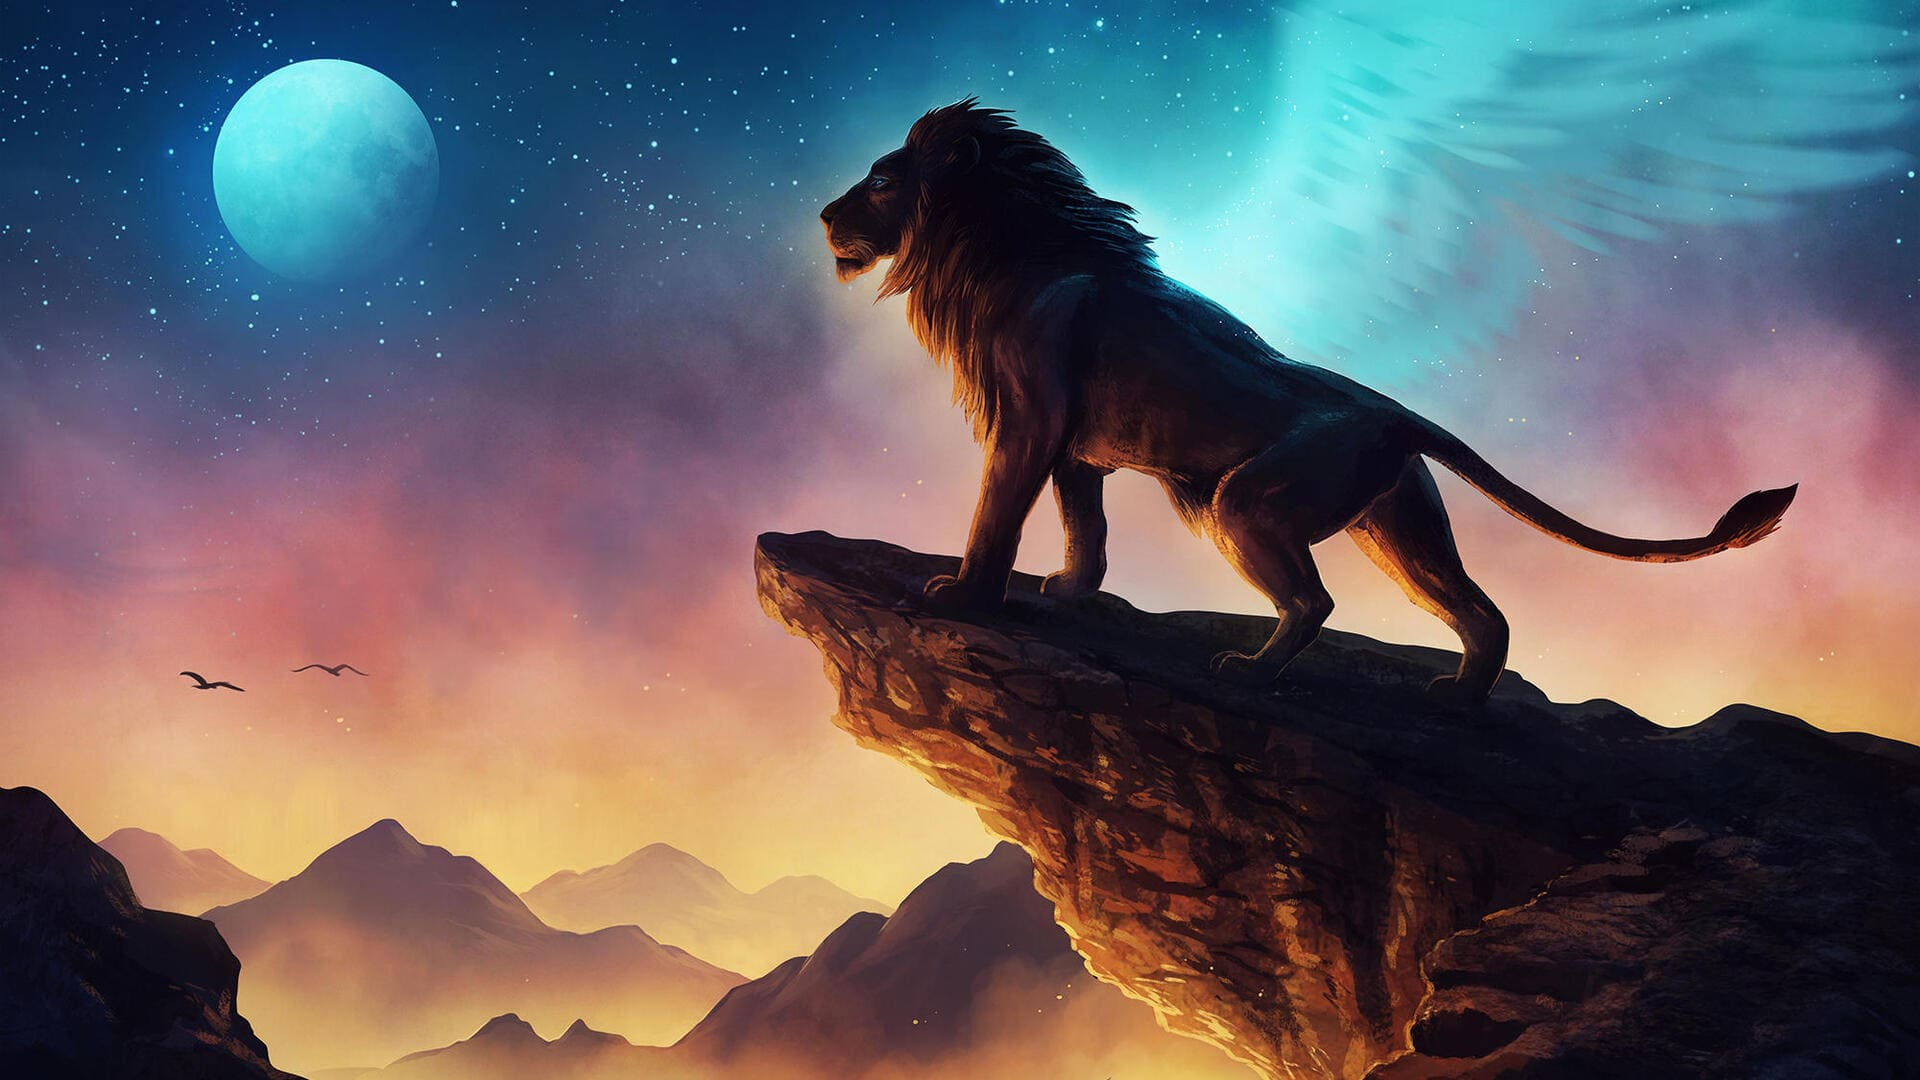 Hd Wallpapers For Pc Lion